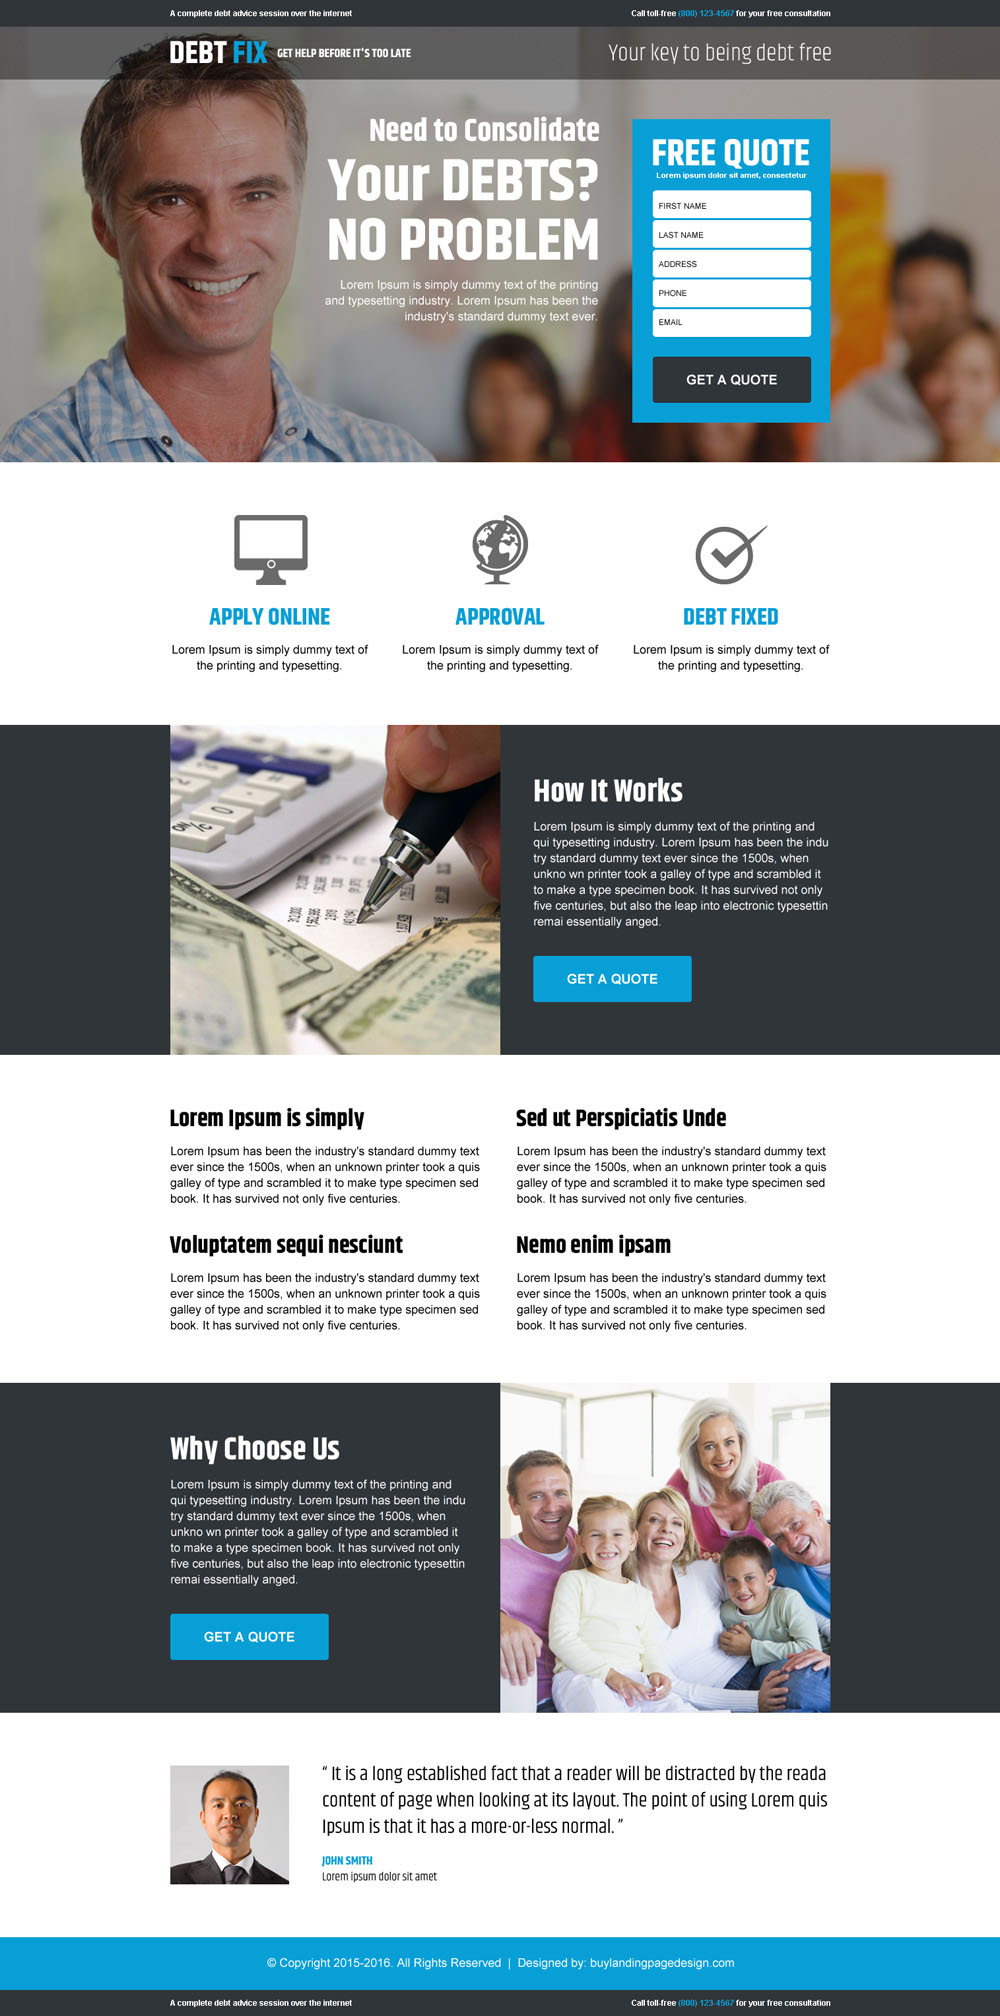 best-debt-advice-service-lead-generation-converting-landing-page-design-042